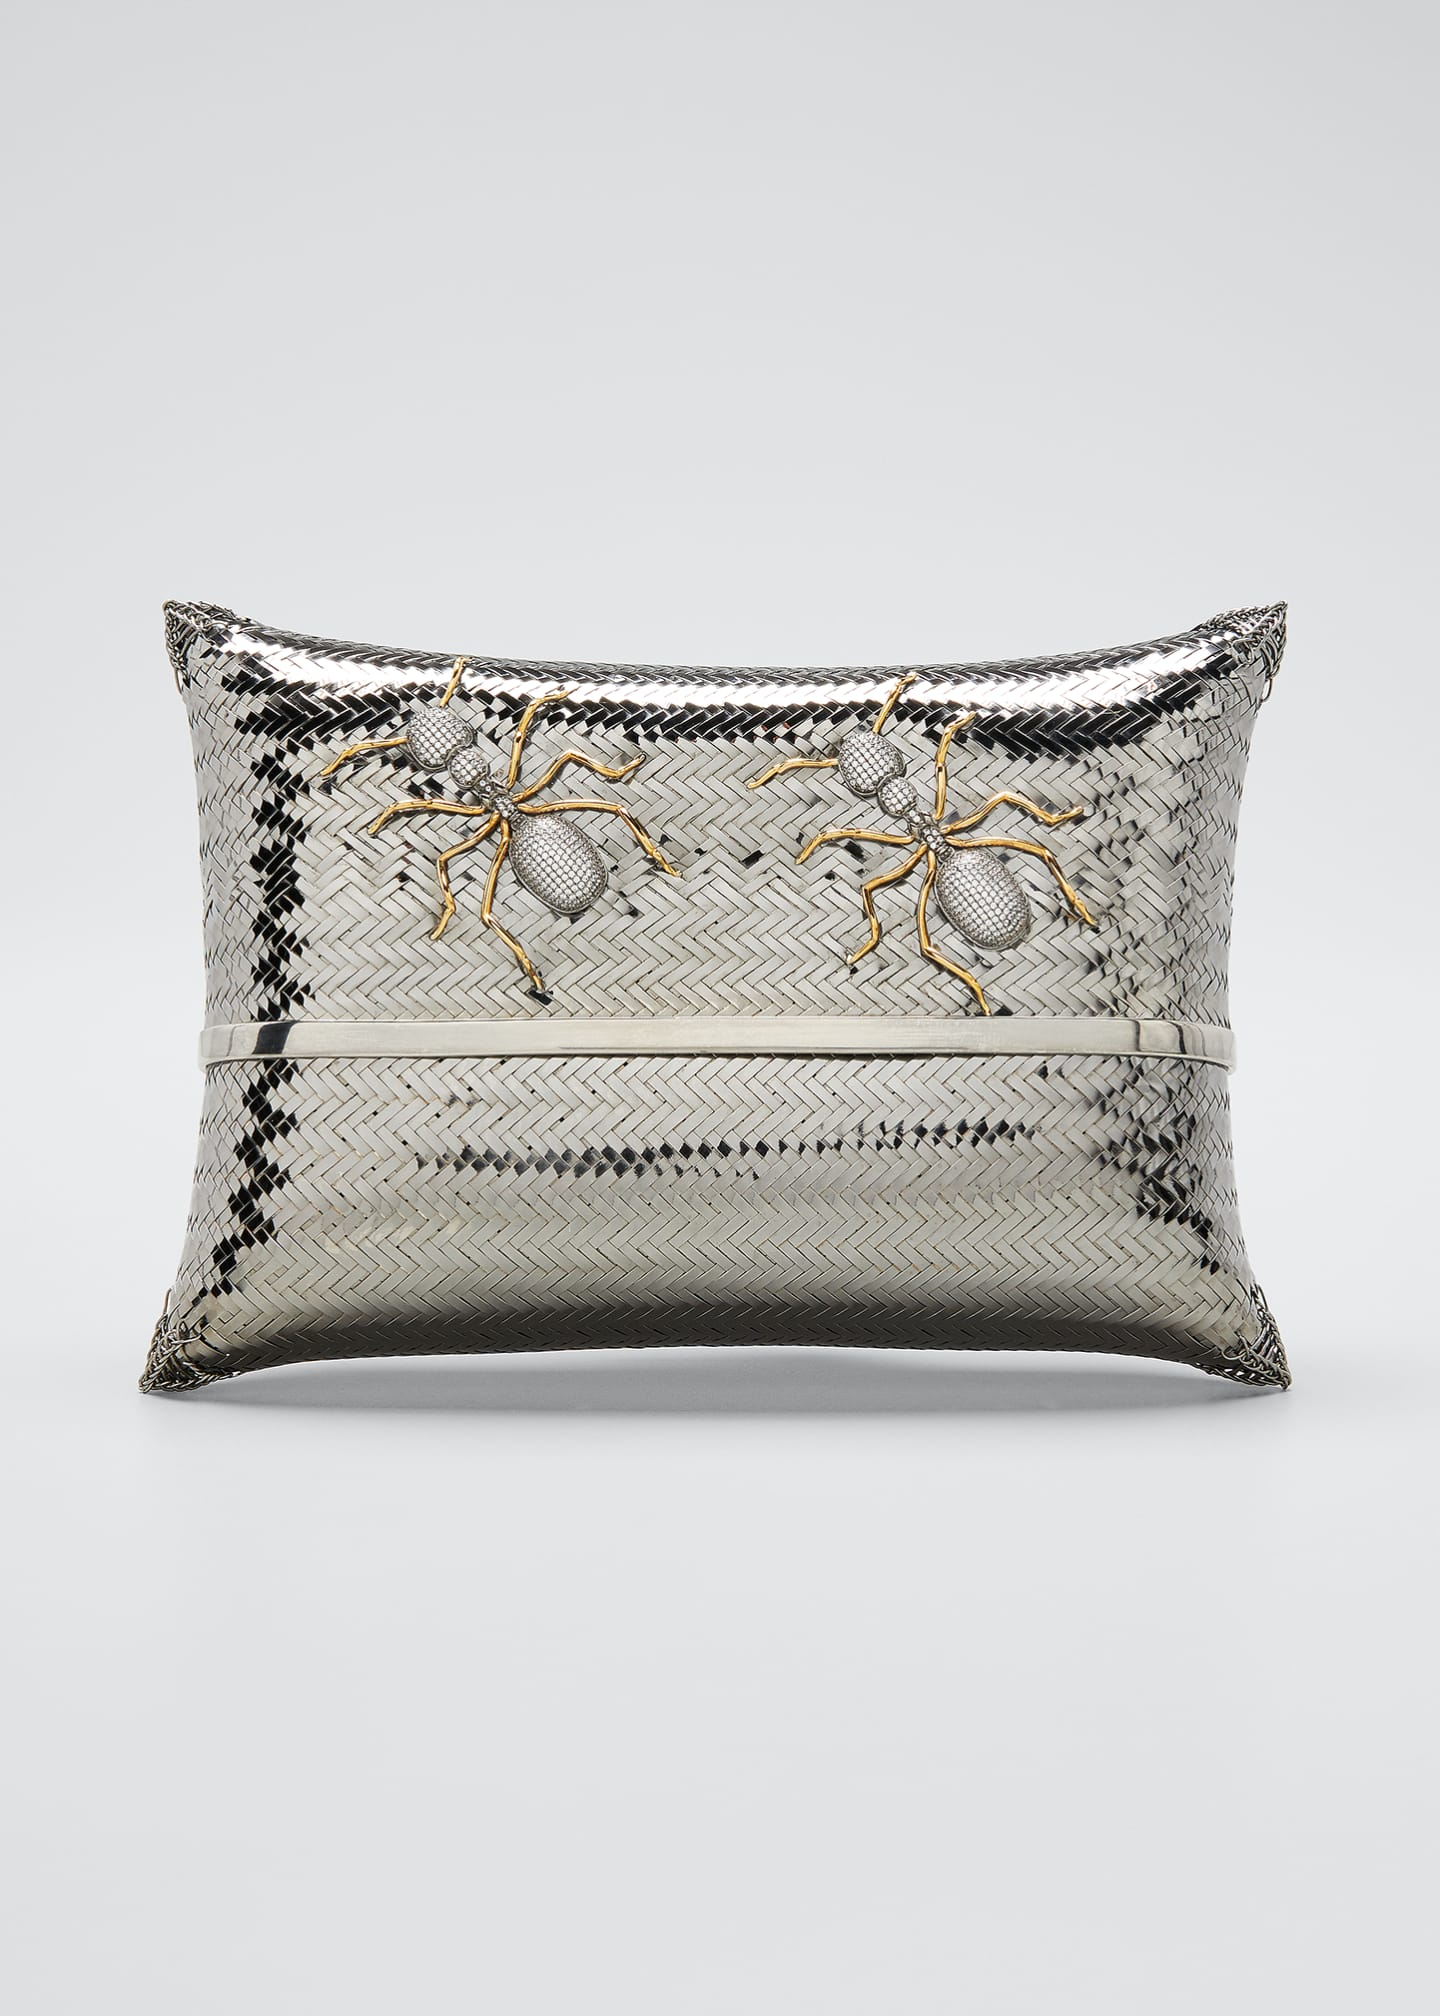 Image 1 of 5: Dali Ants Metallic Minaudiere Clutch